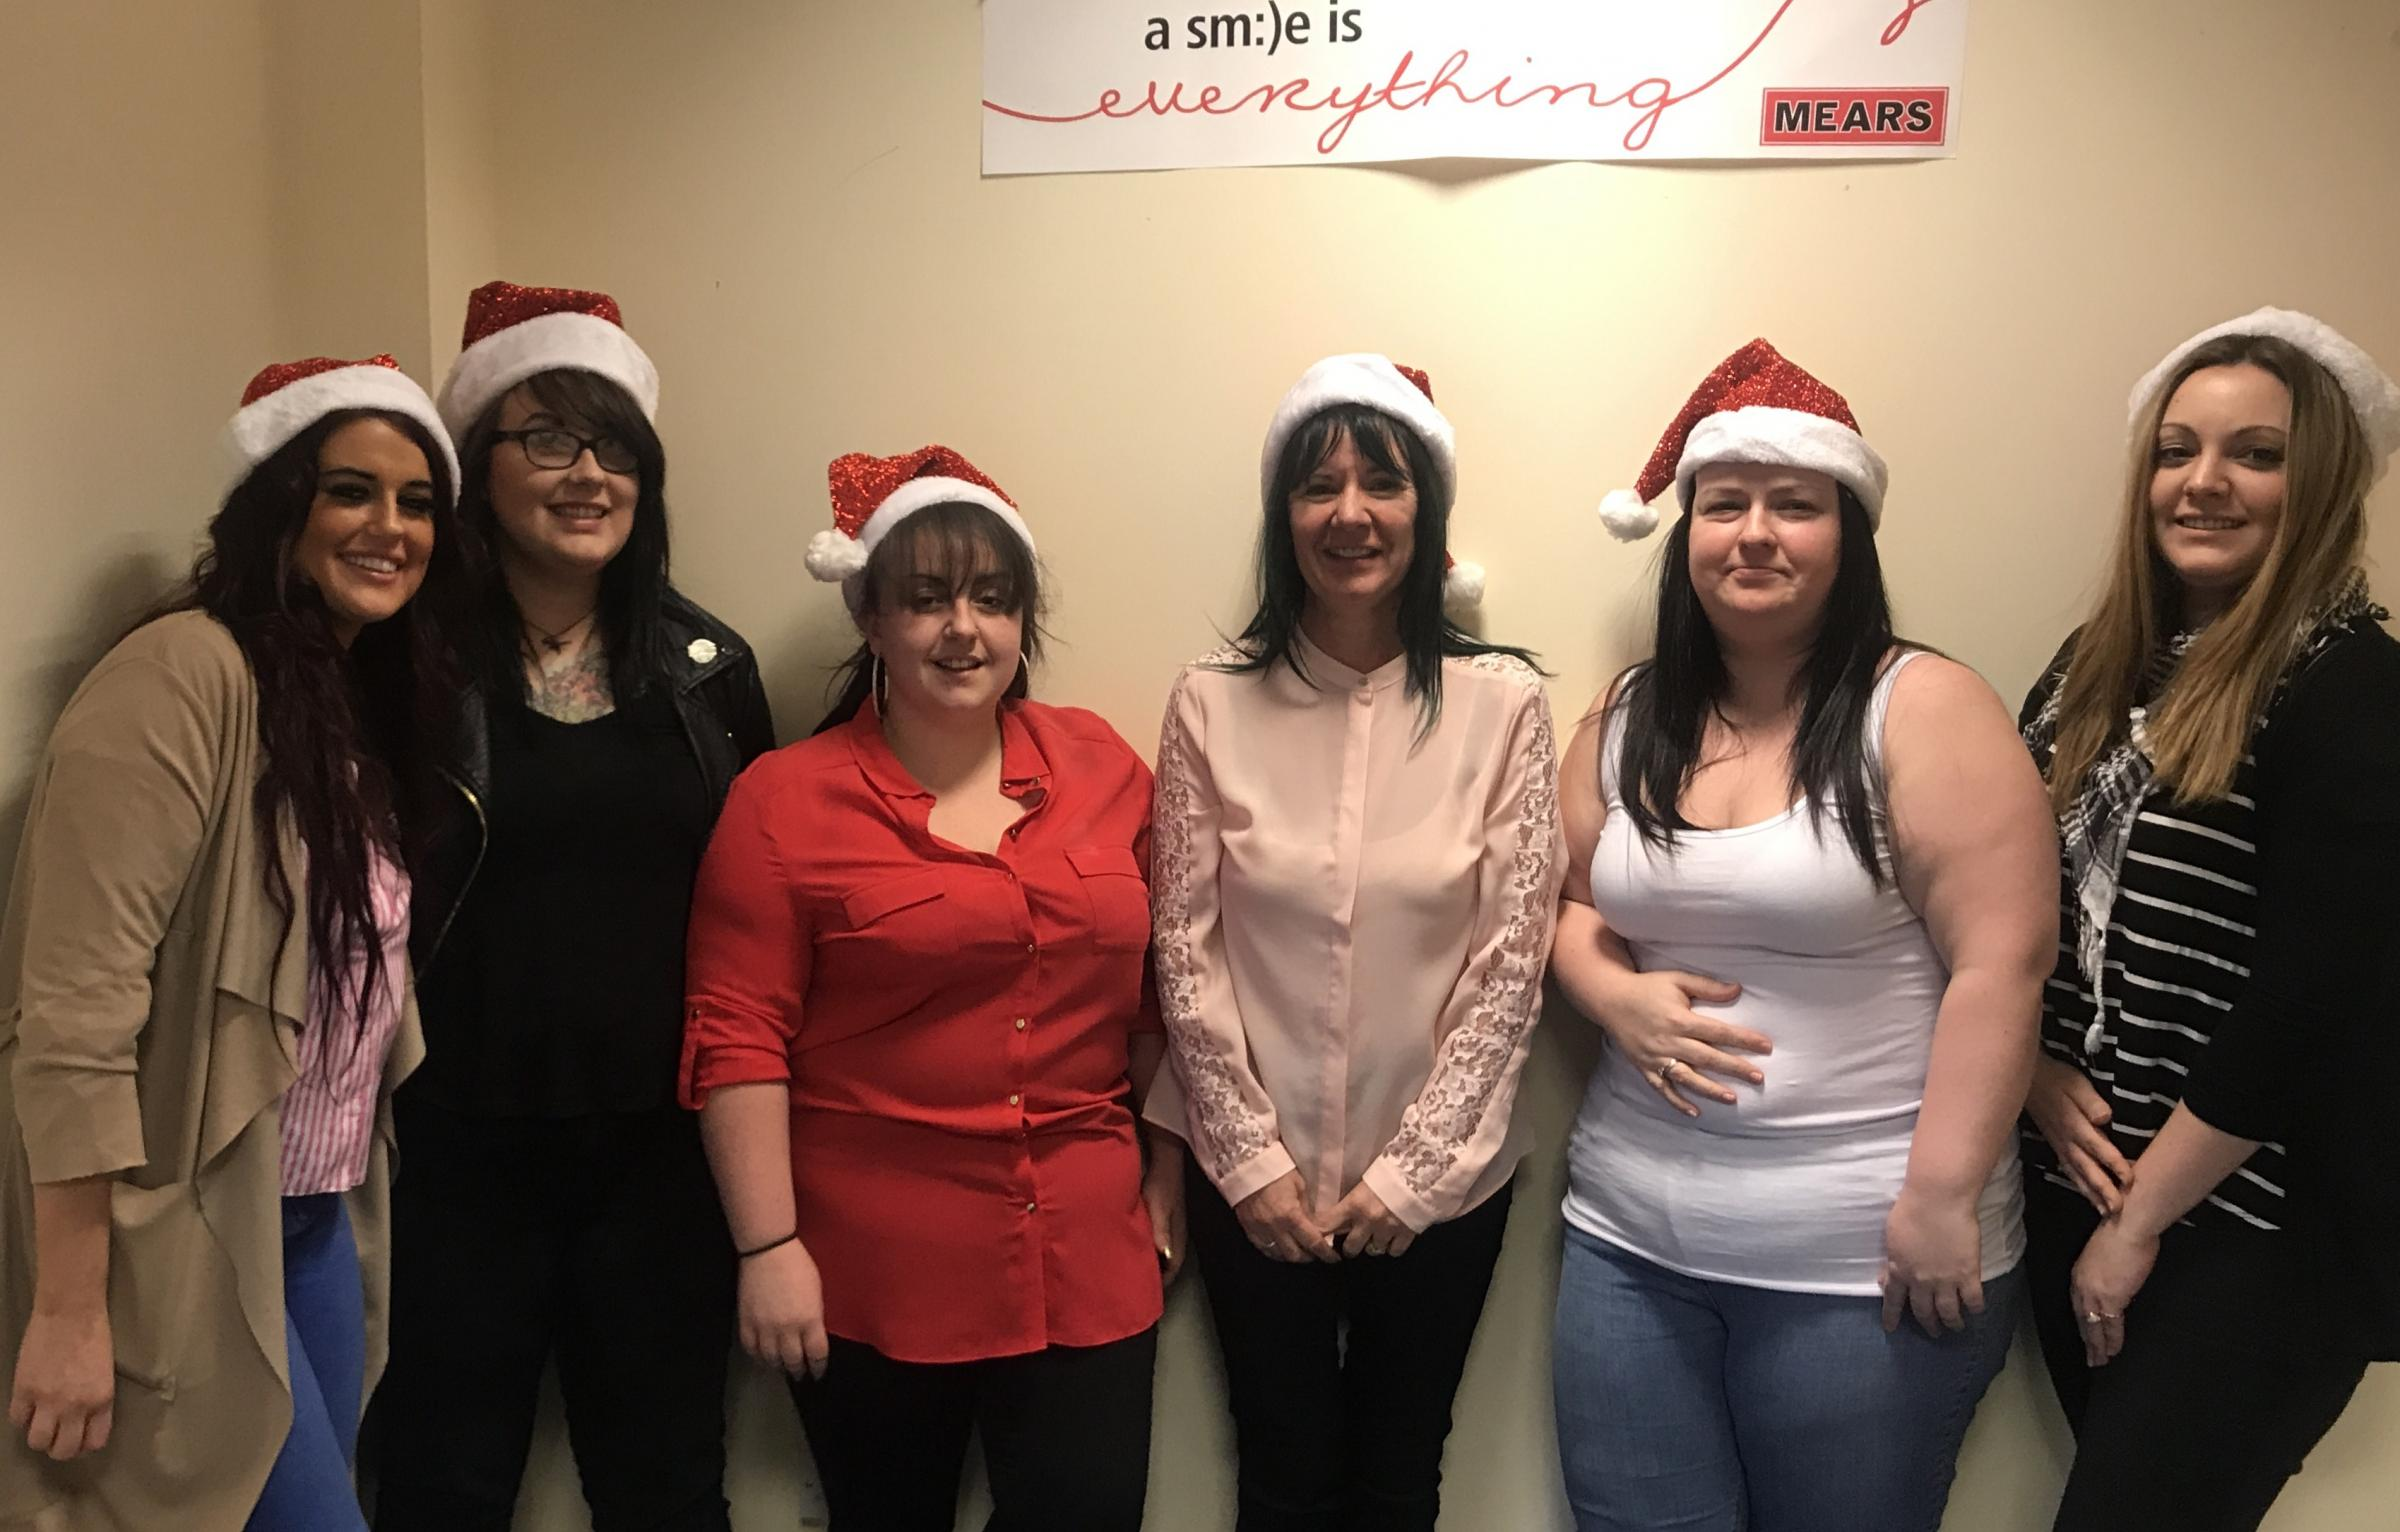 LEFT TO RIGHT: Abbie McGinley, care co-ordinator; Lynn Fulton, senior support worker; Caitlin Leask, assistant service manager; Carole Gillies, service manager; Julie Spence care co-ordinator, and Sammie Tucker, administrator